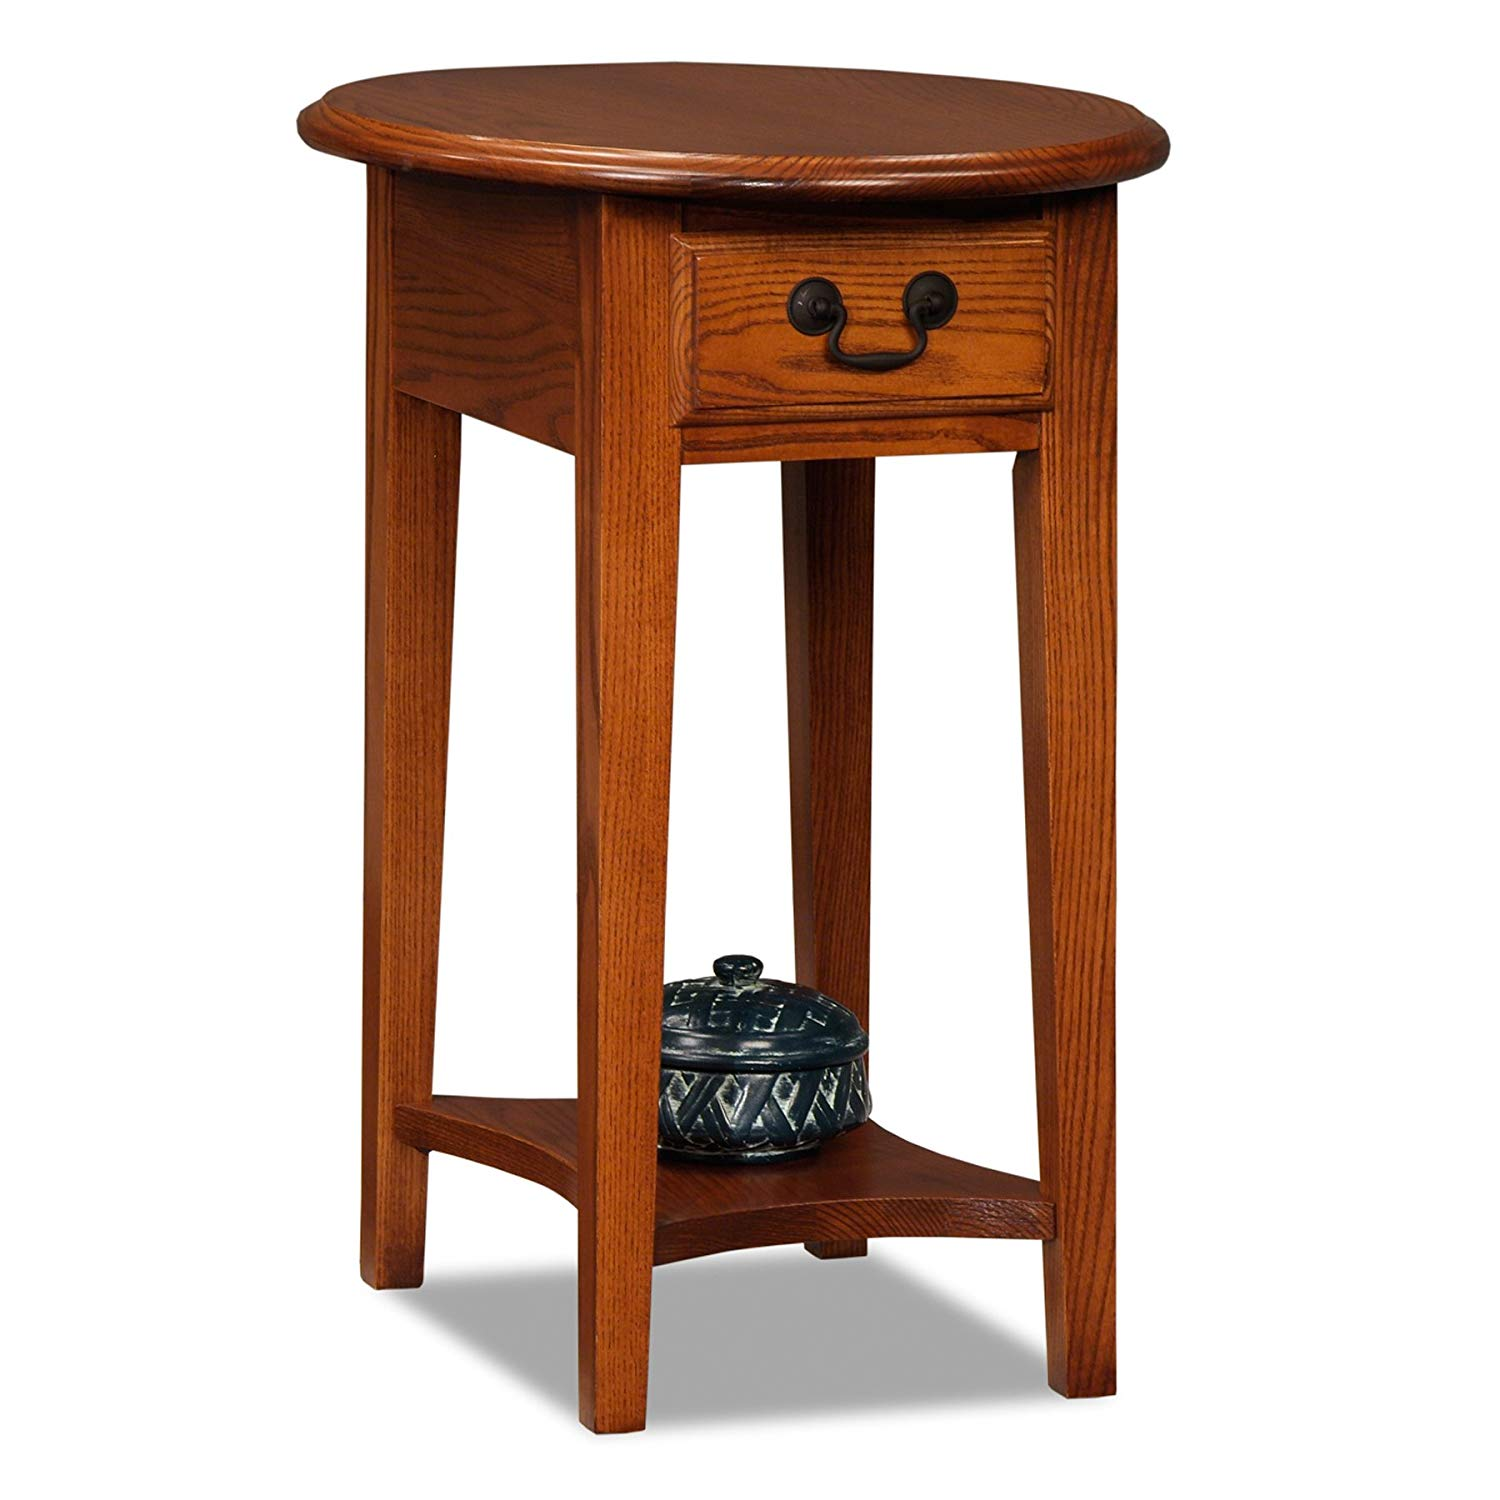 leick oval end table medium oak kitchen dining accent solid tables slim telephone red metal outdoor side brown resin wicker bathroom wall clock vintage legs bedside build your own